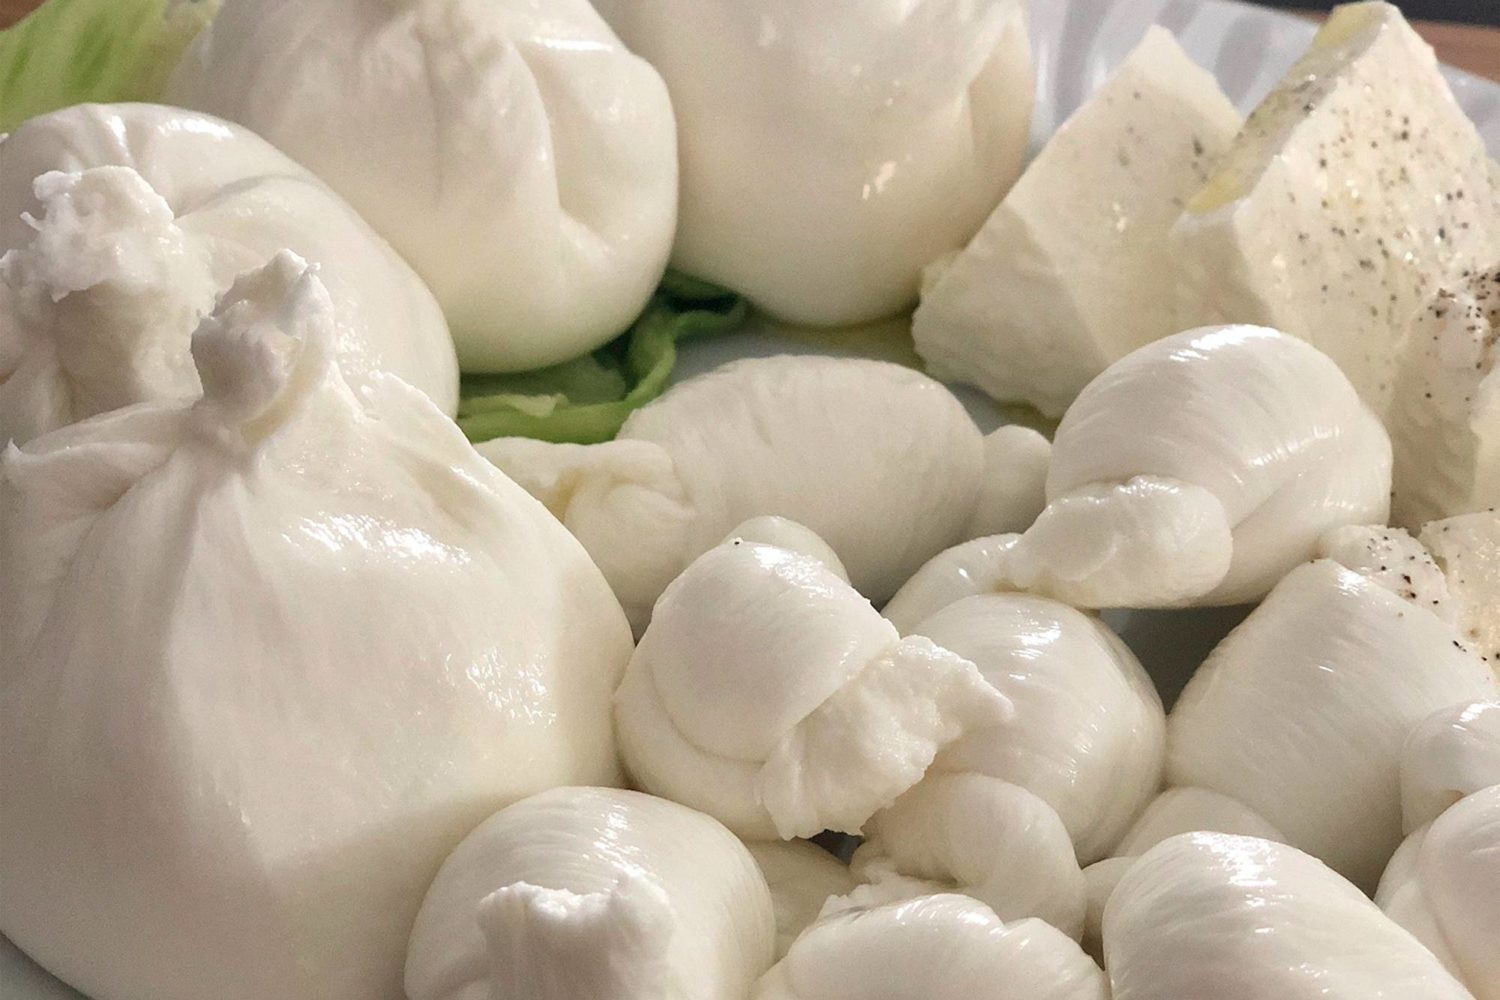 Tasting fresh cheese burrata and mozzarella